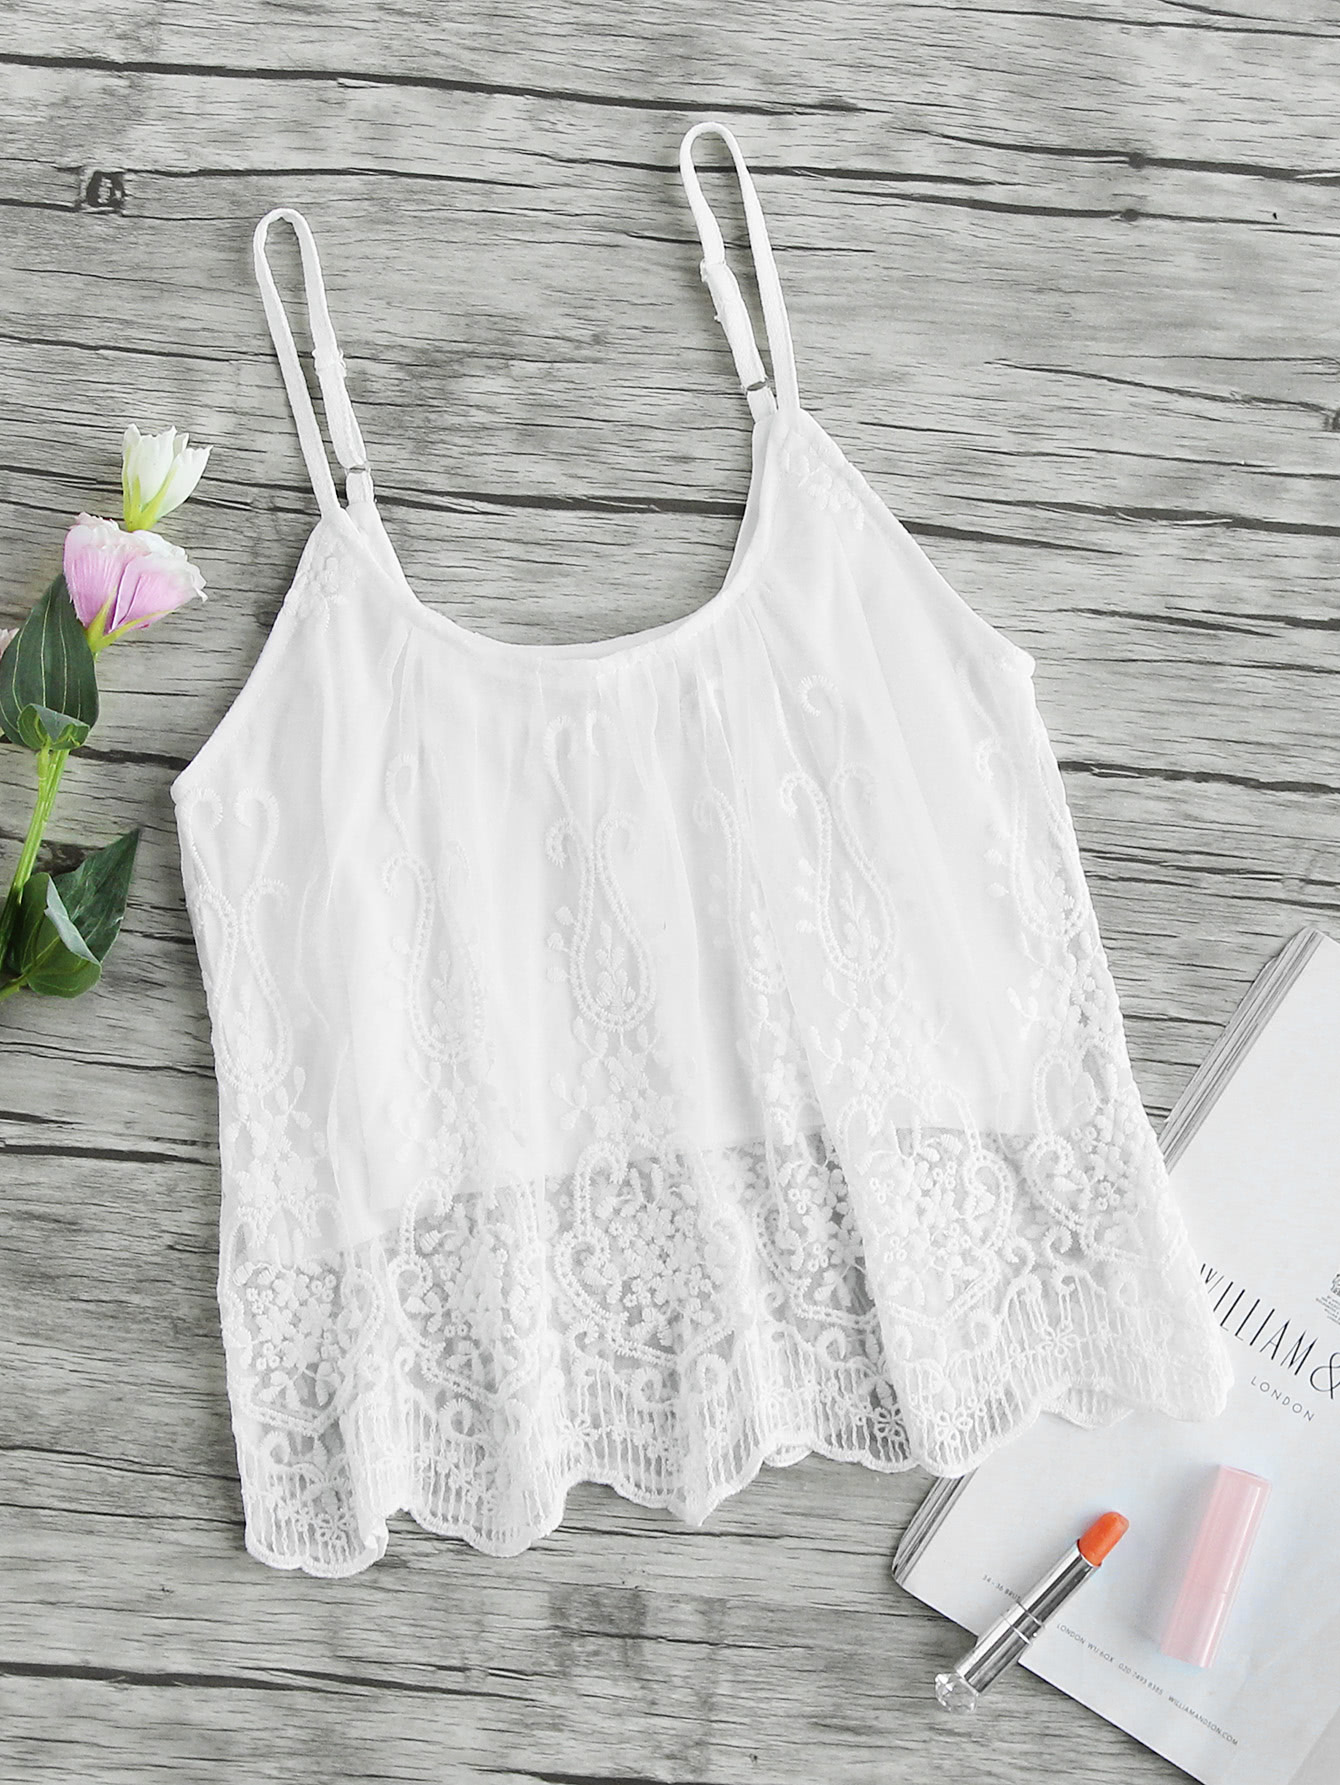 Scallop Embroidered Mesh Overlay Cami Top vest170629002